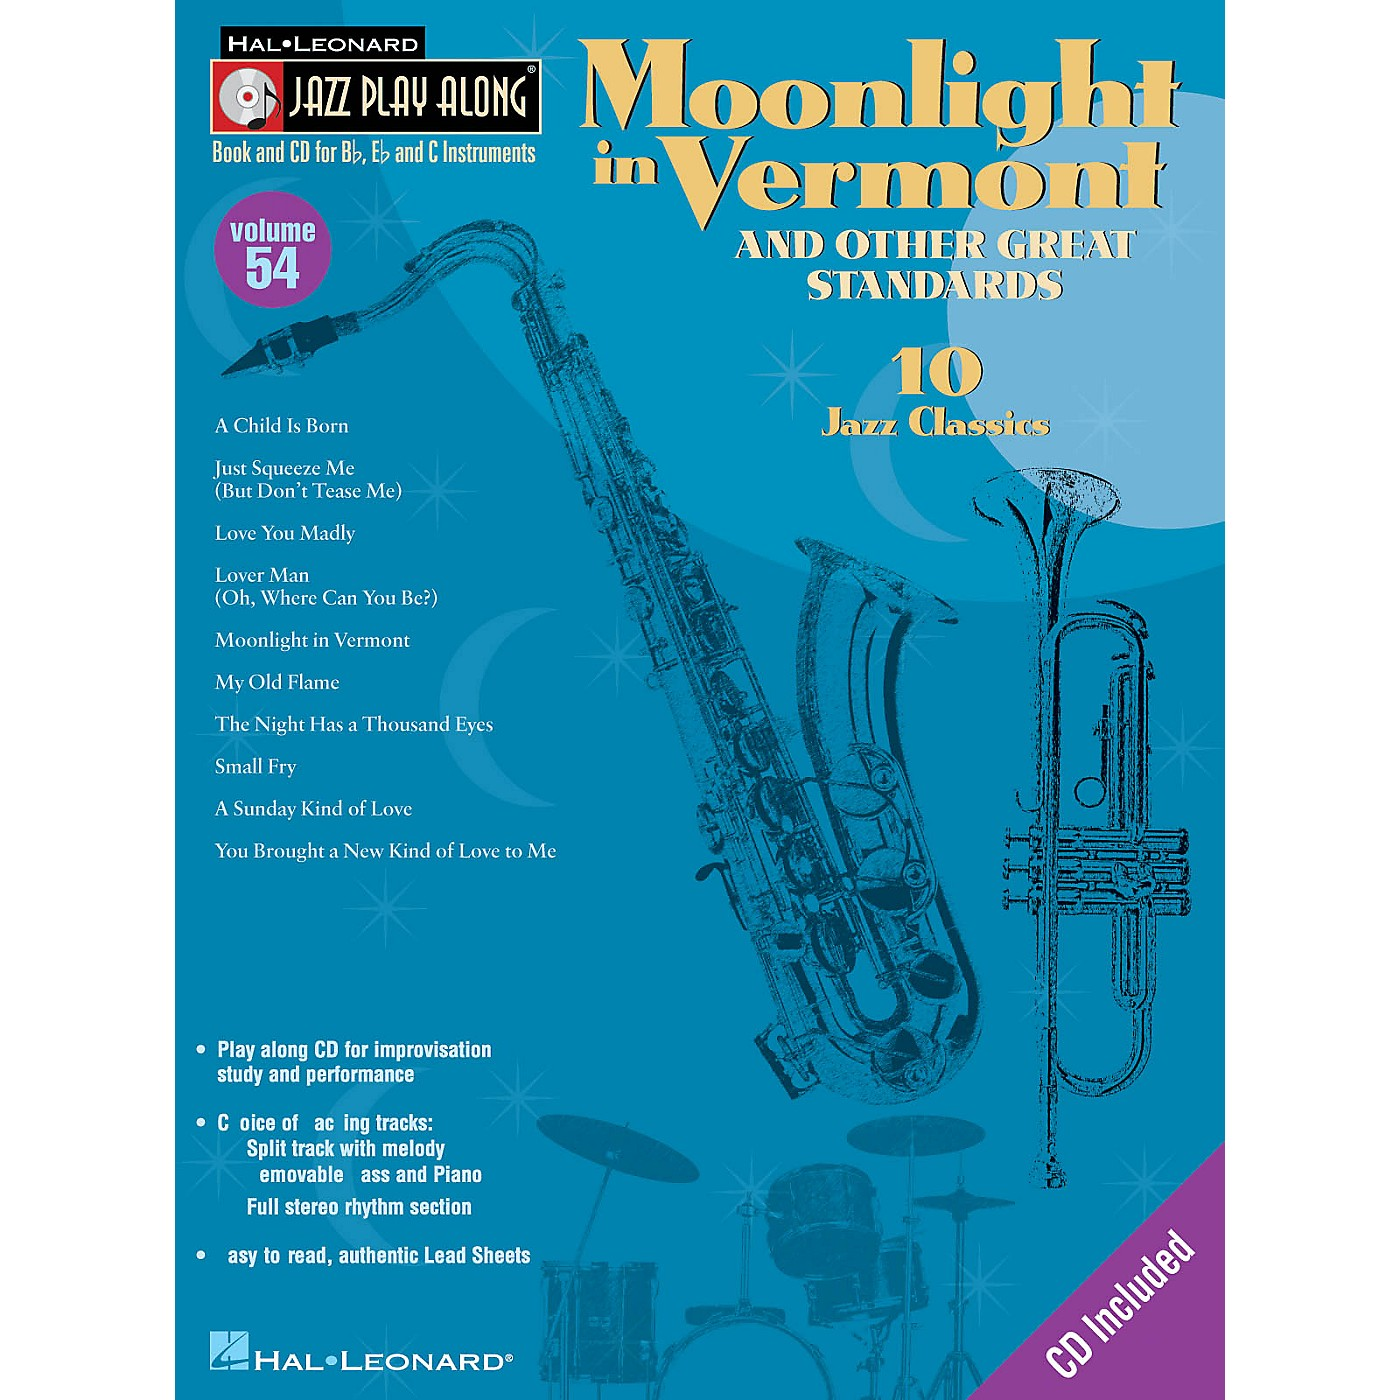 Hal Leonard Moonlight in Vermont & Other Great Standards Jazz Play Along Series Softcover with CD by Various thumbnail